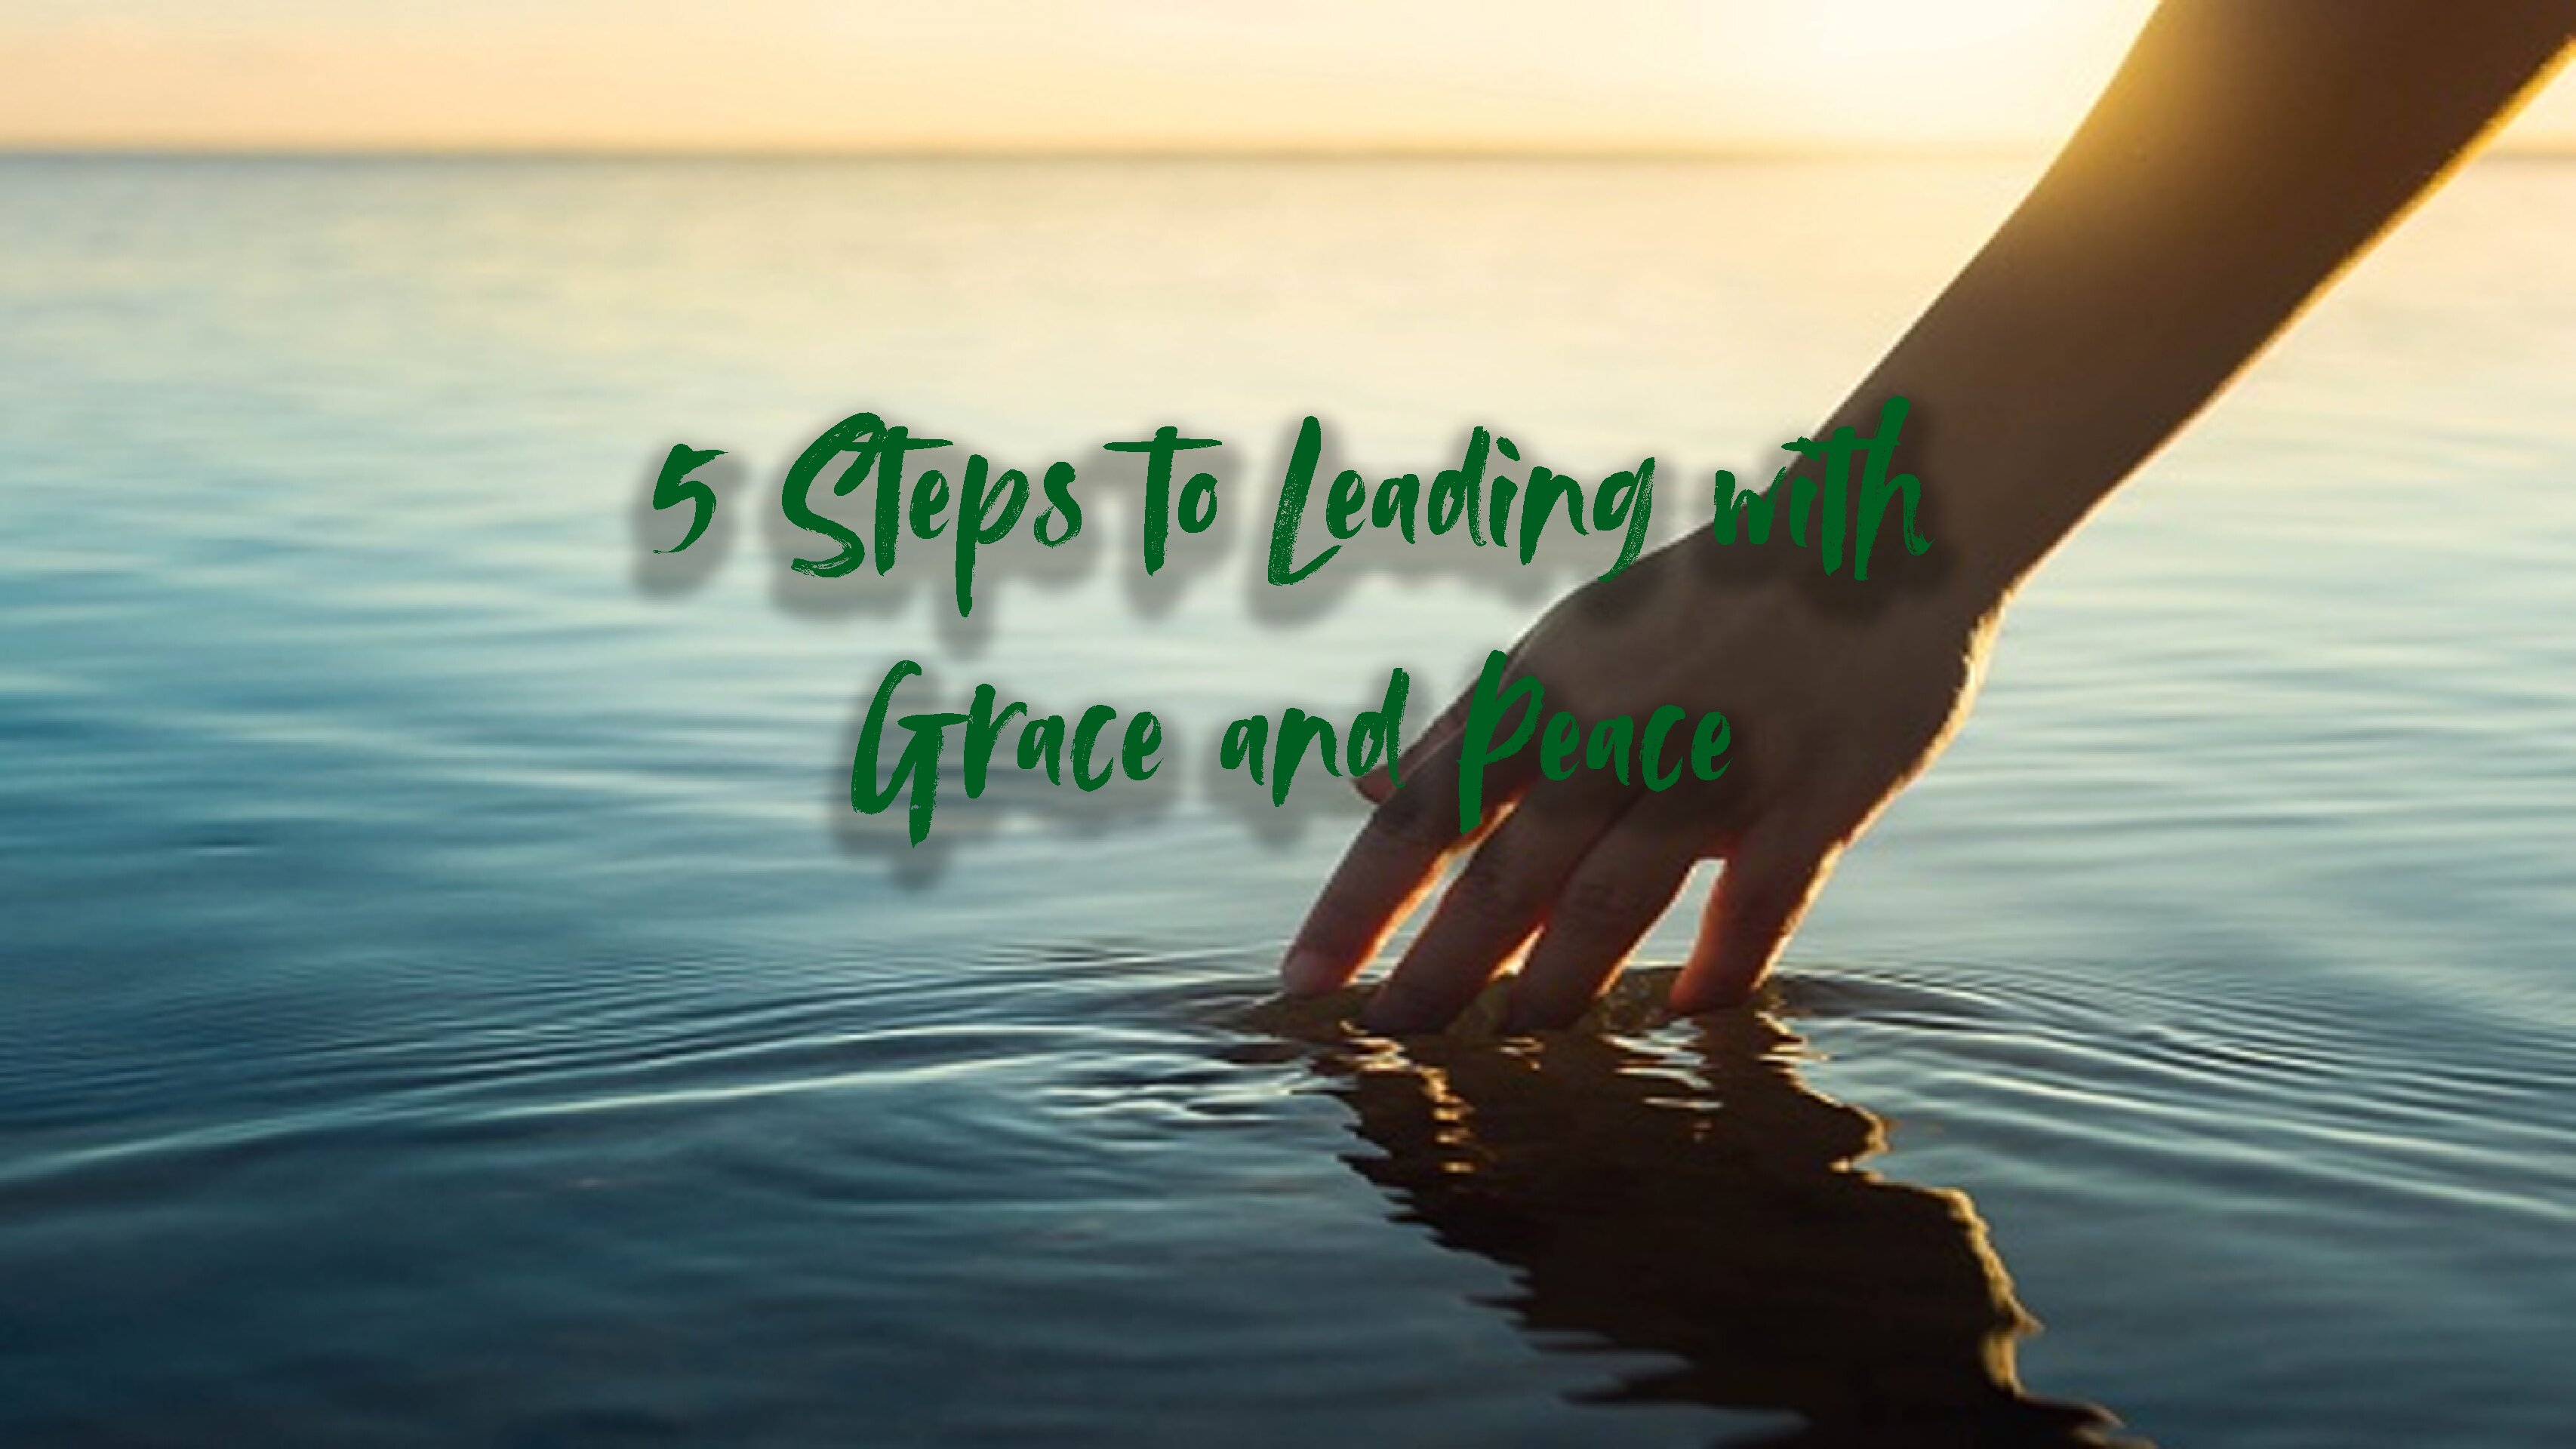 5 Steps to Leading With Grace and Peace